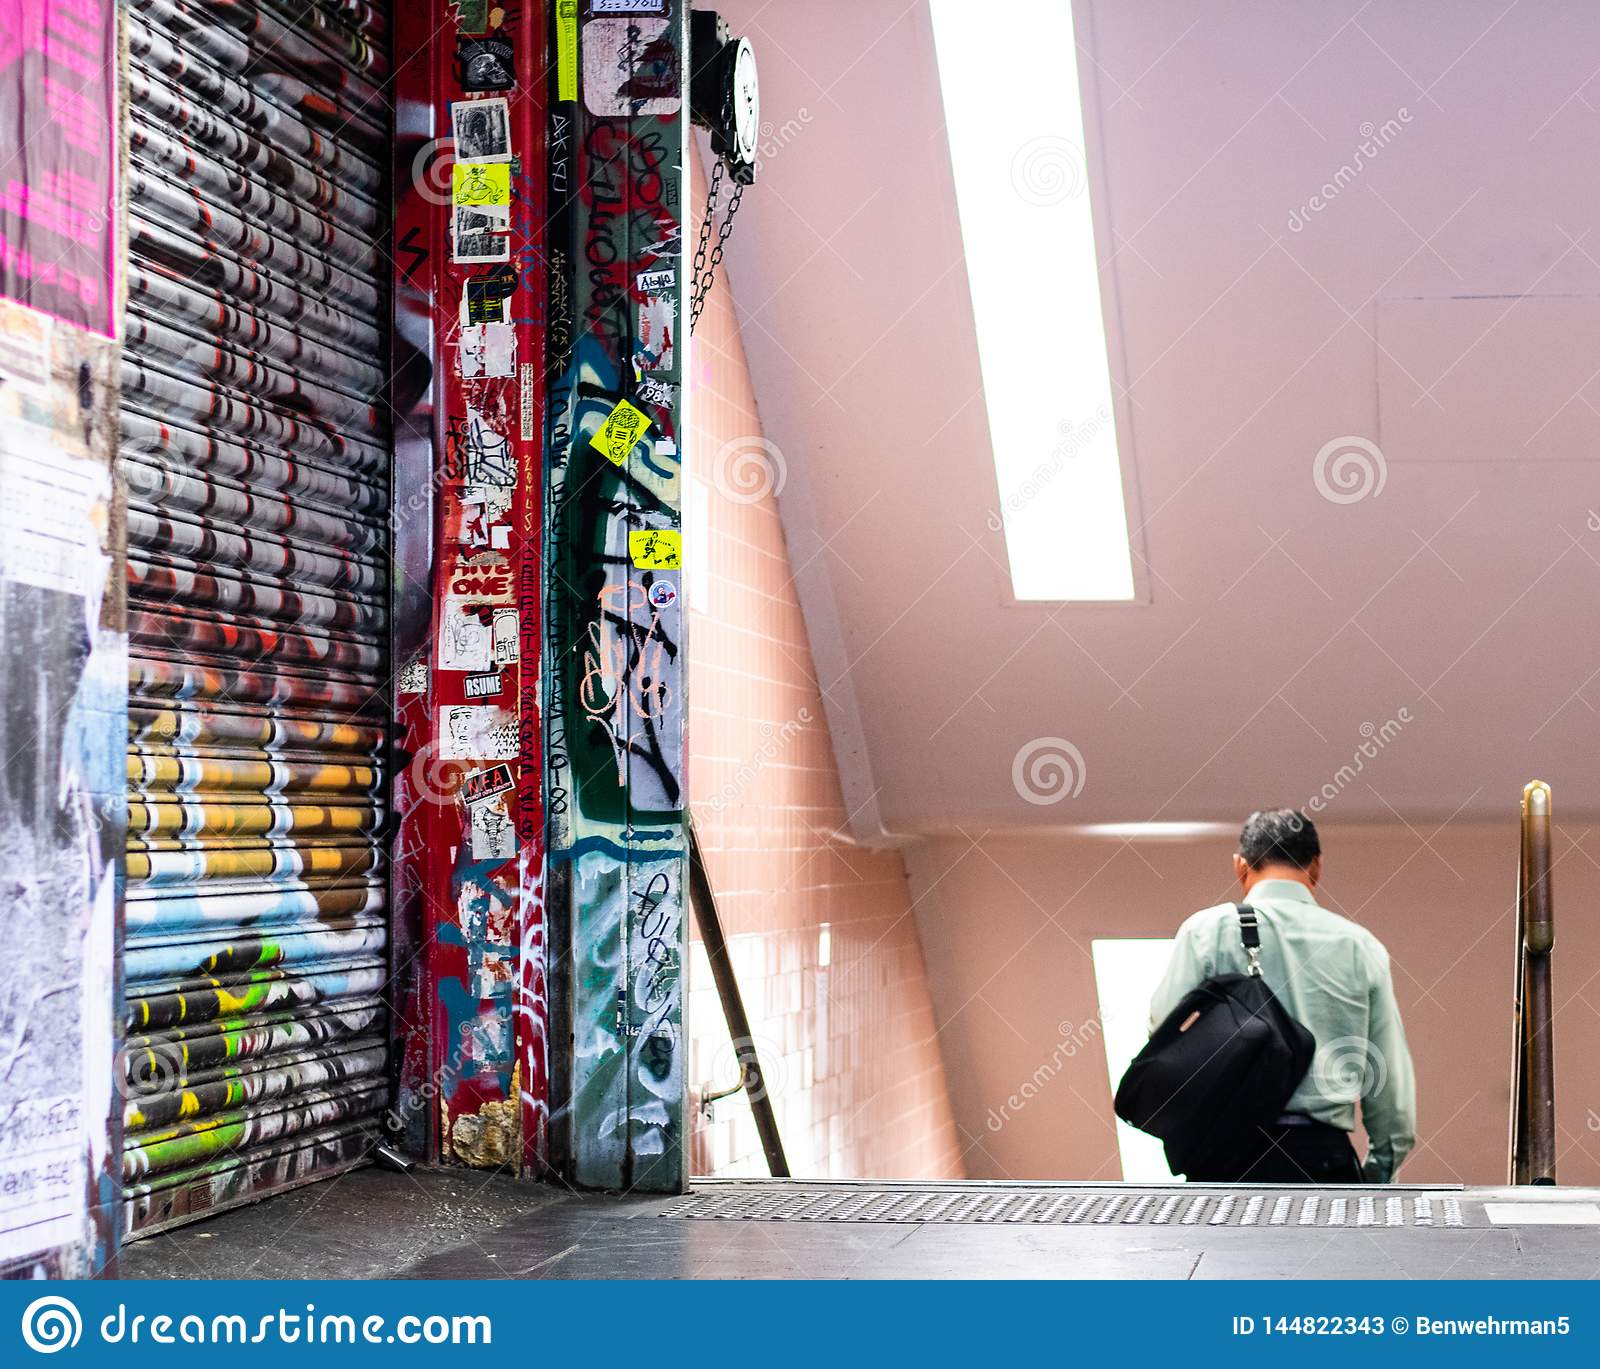 Man Walking into Underground Subway Station